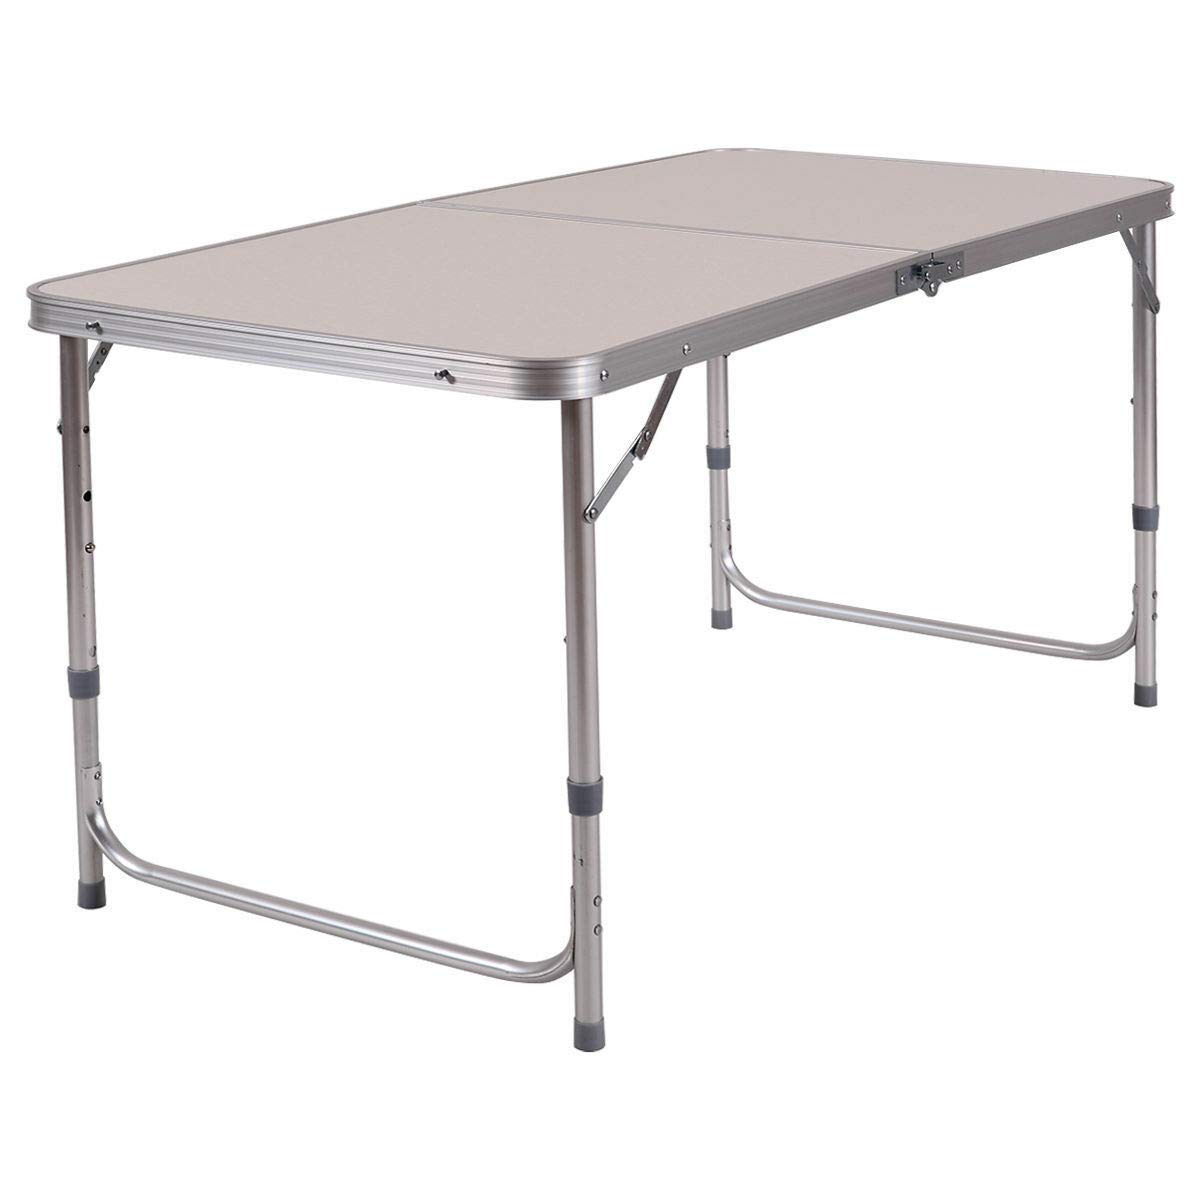 PNPGlobal Portable Outdoor Table Aluminum Folding Camping Picnic Table Adjustable Height New Size 2FT X 4FT by PNPGlobal